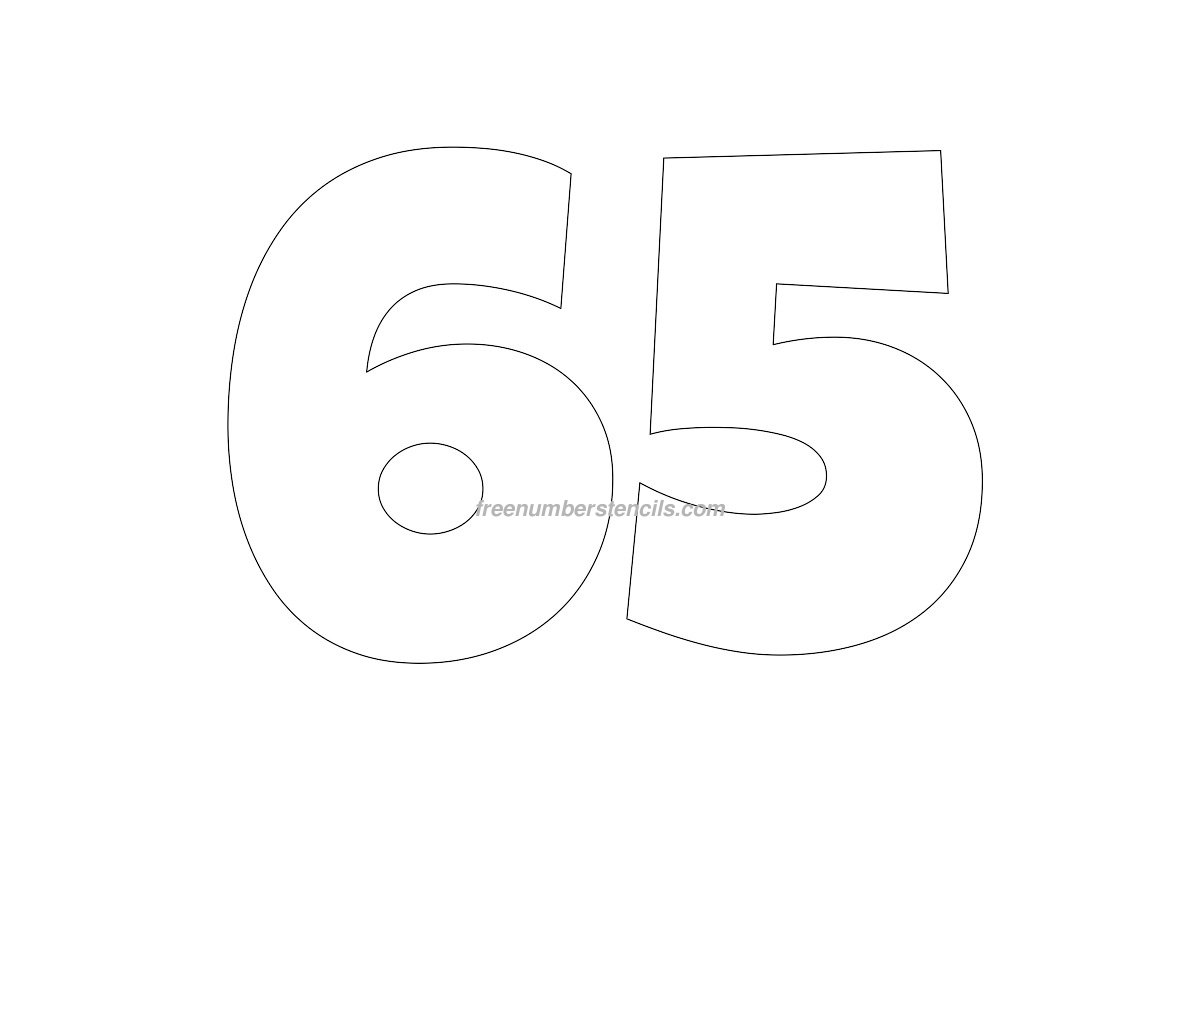 Free Giant 65 Number Stencil - Freenumberstencils.com